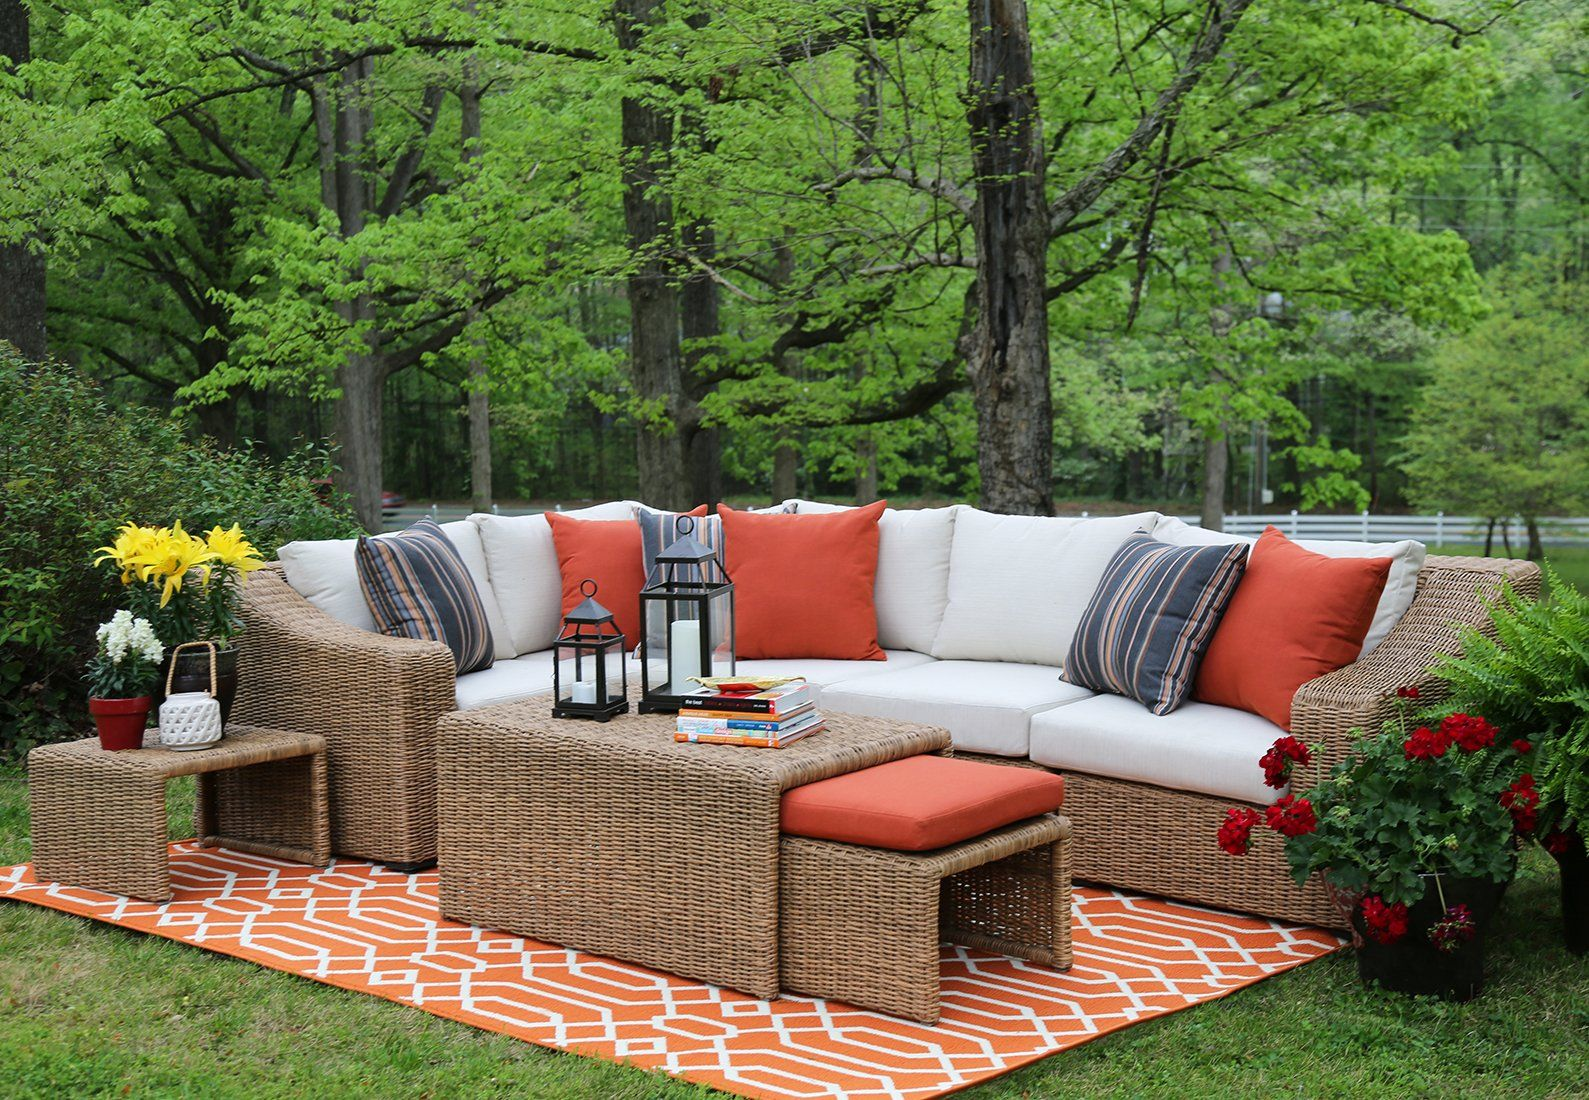 AE Outdoor SEC200340 8 Piece Arizona Sectional with Cushions. Fade and mildew resistant premium Sunbrella outdoor fabric. Rust proof aluminum frame. All weather hand woven resin wicker. Fully assembled/minimal assembly. 5 year limited warranty.